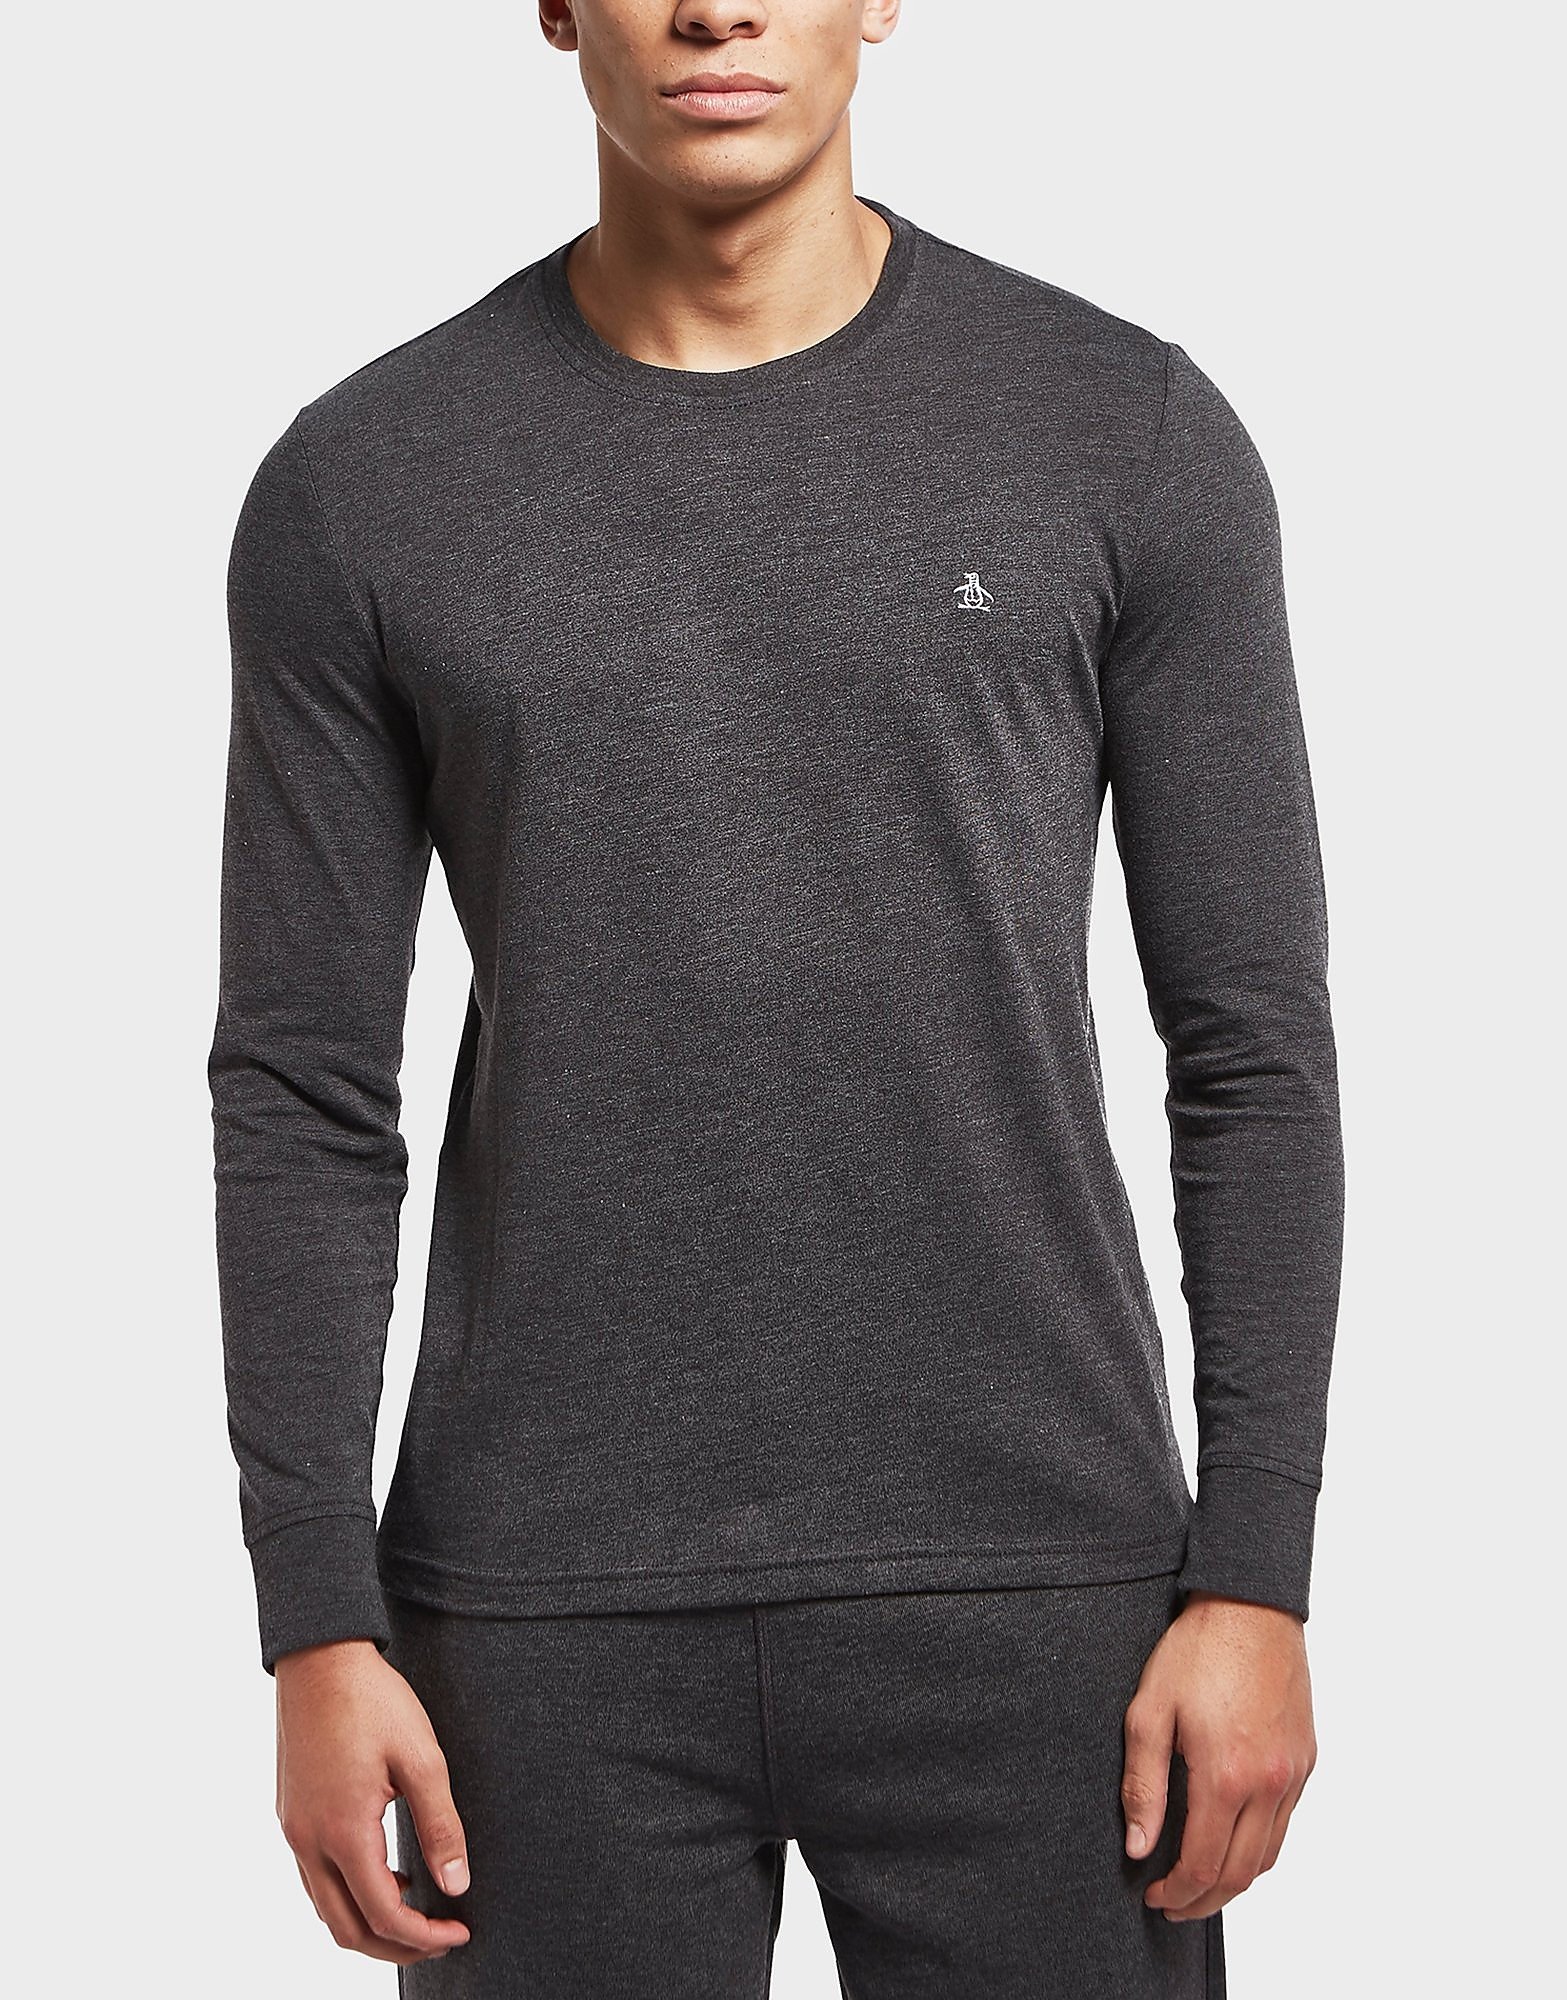 Original Penguin Cuffed Long Sleeve T-Shirt - Exclusive